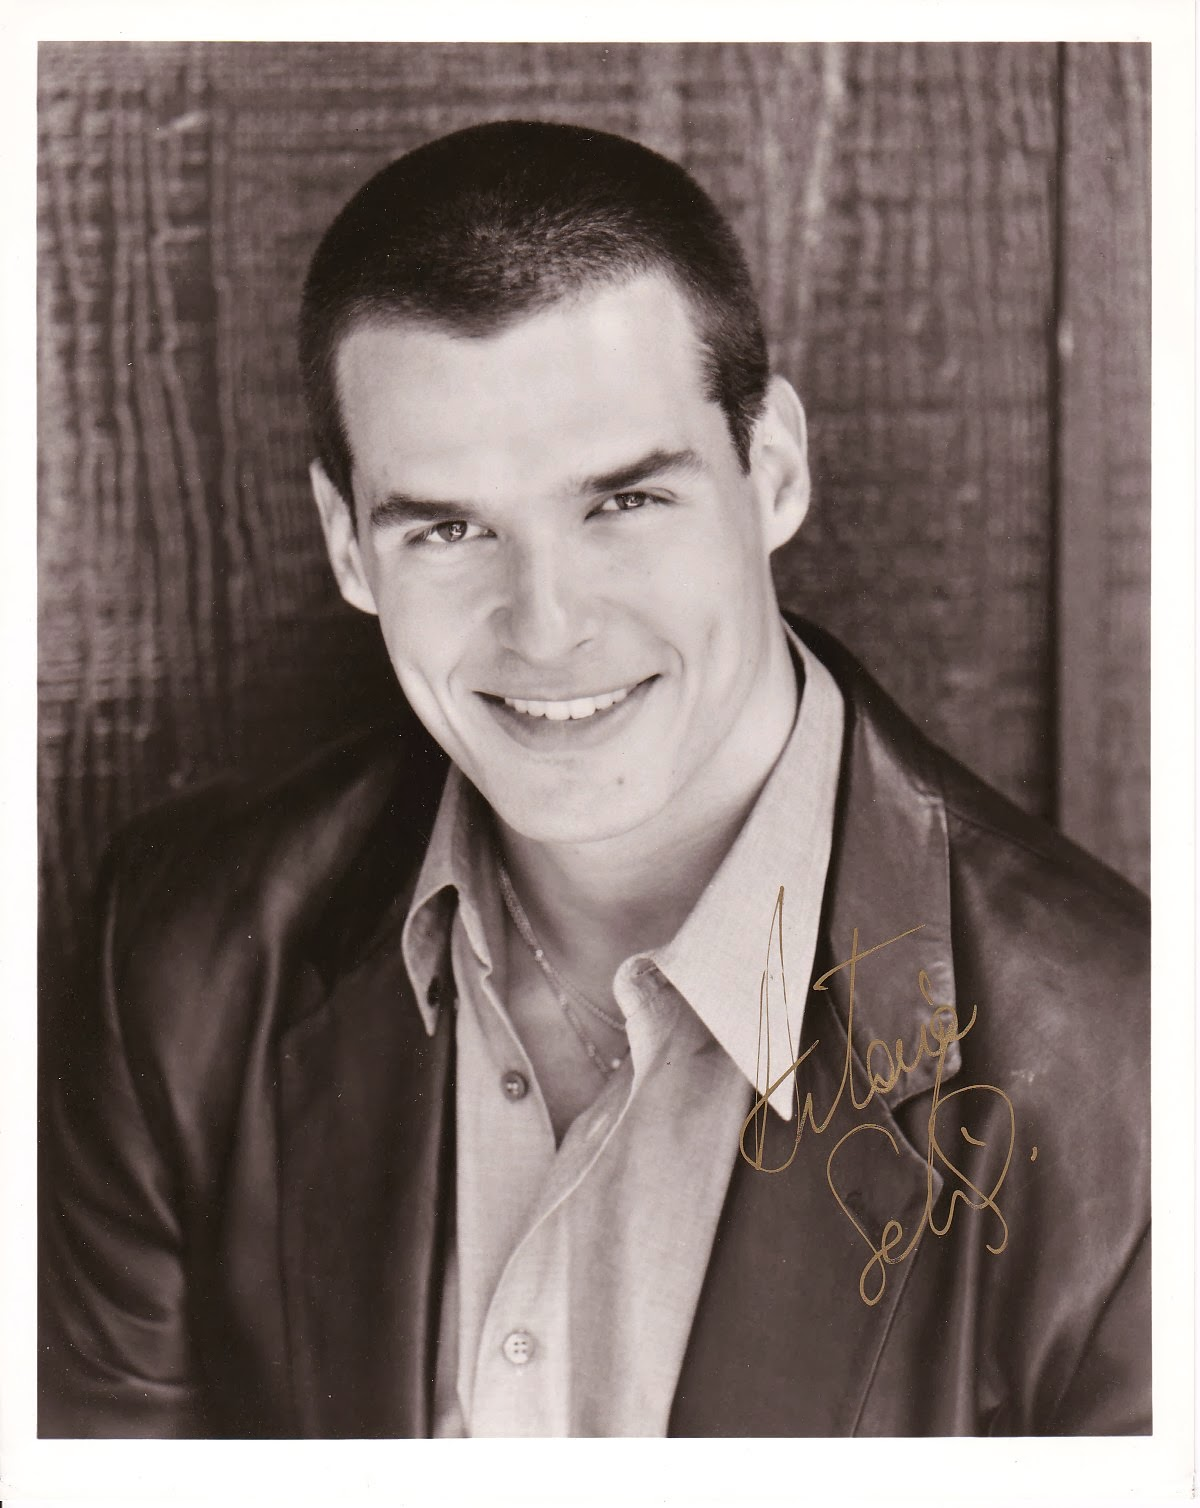 TV star Antonio Sabato, Jr. autographed 8x10 photo $30.00 FREE ship